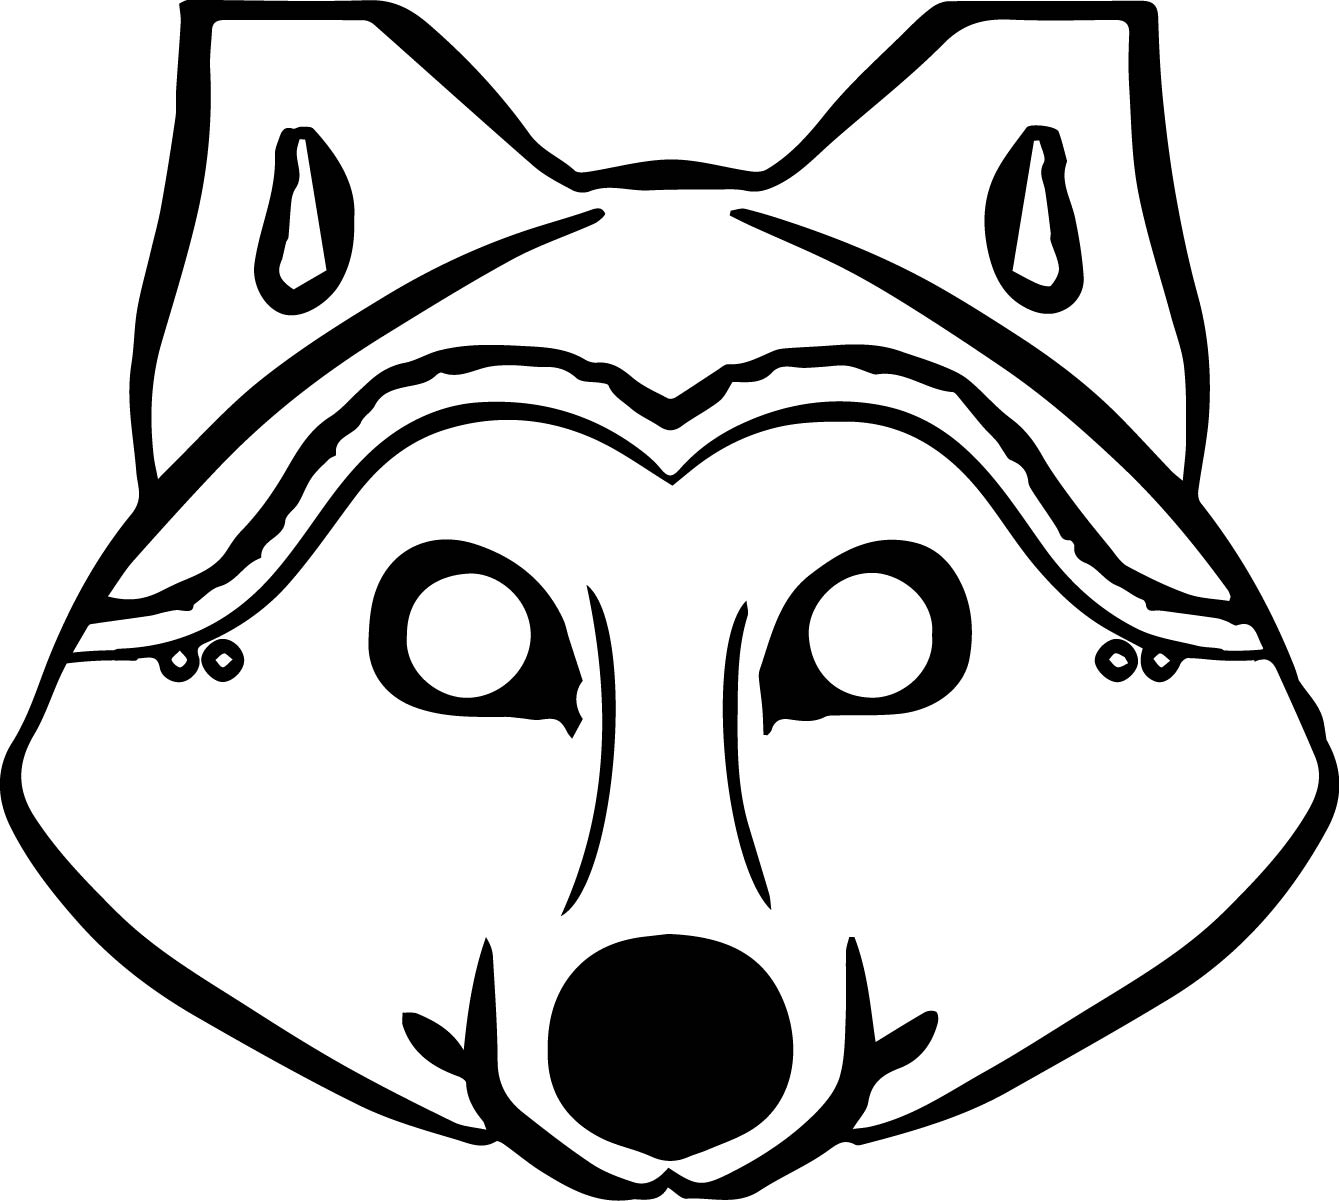 wolf face coloring pages wolf face coloring pages at getdrawings free download coloring wolf face pages